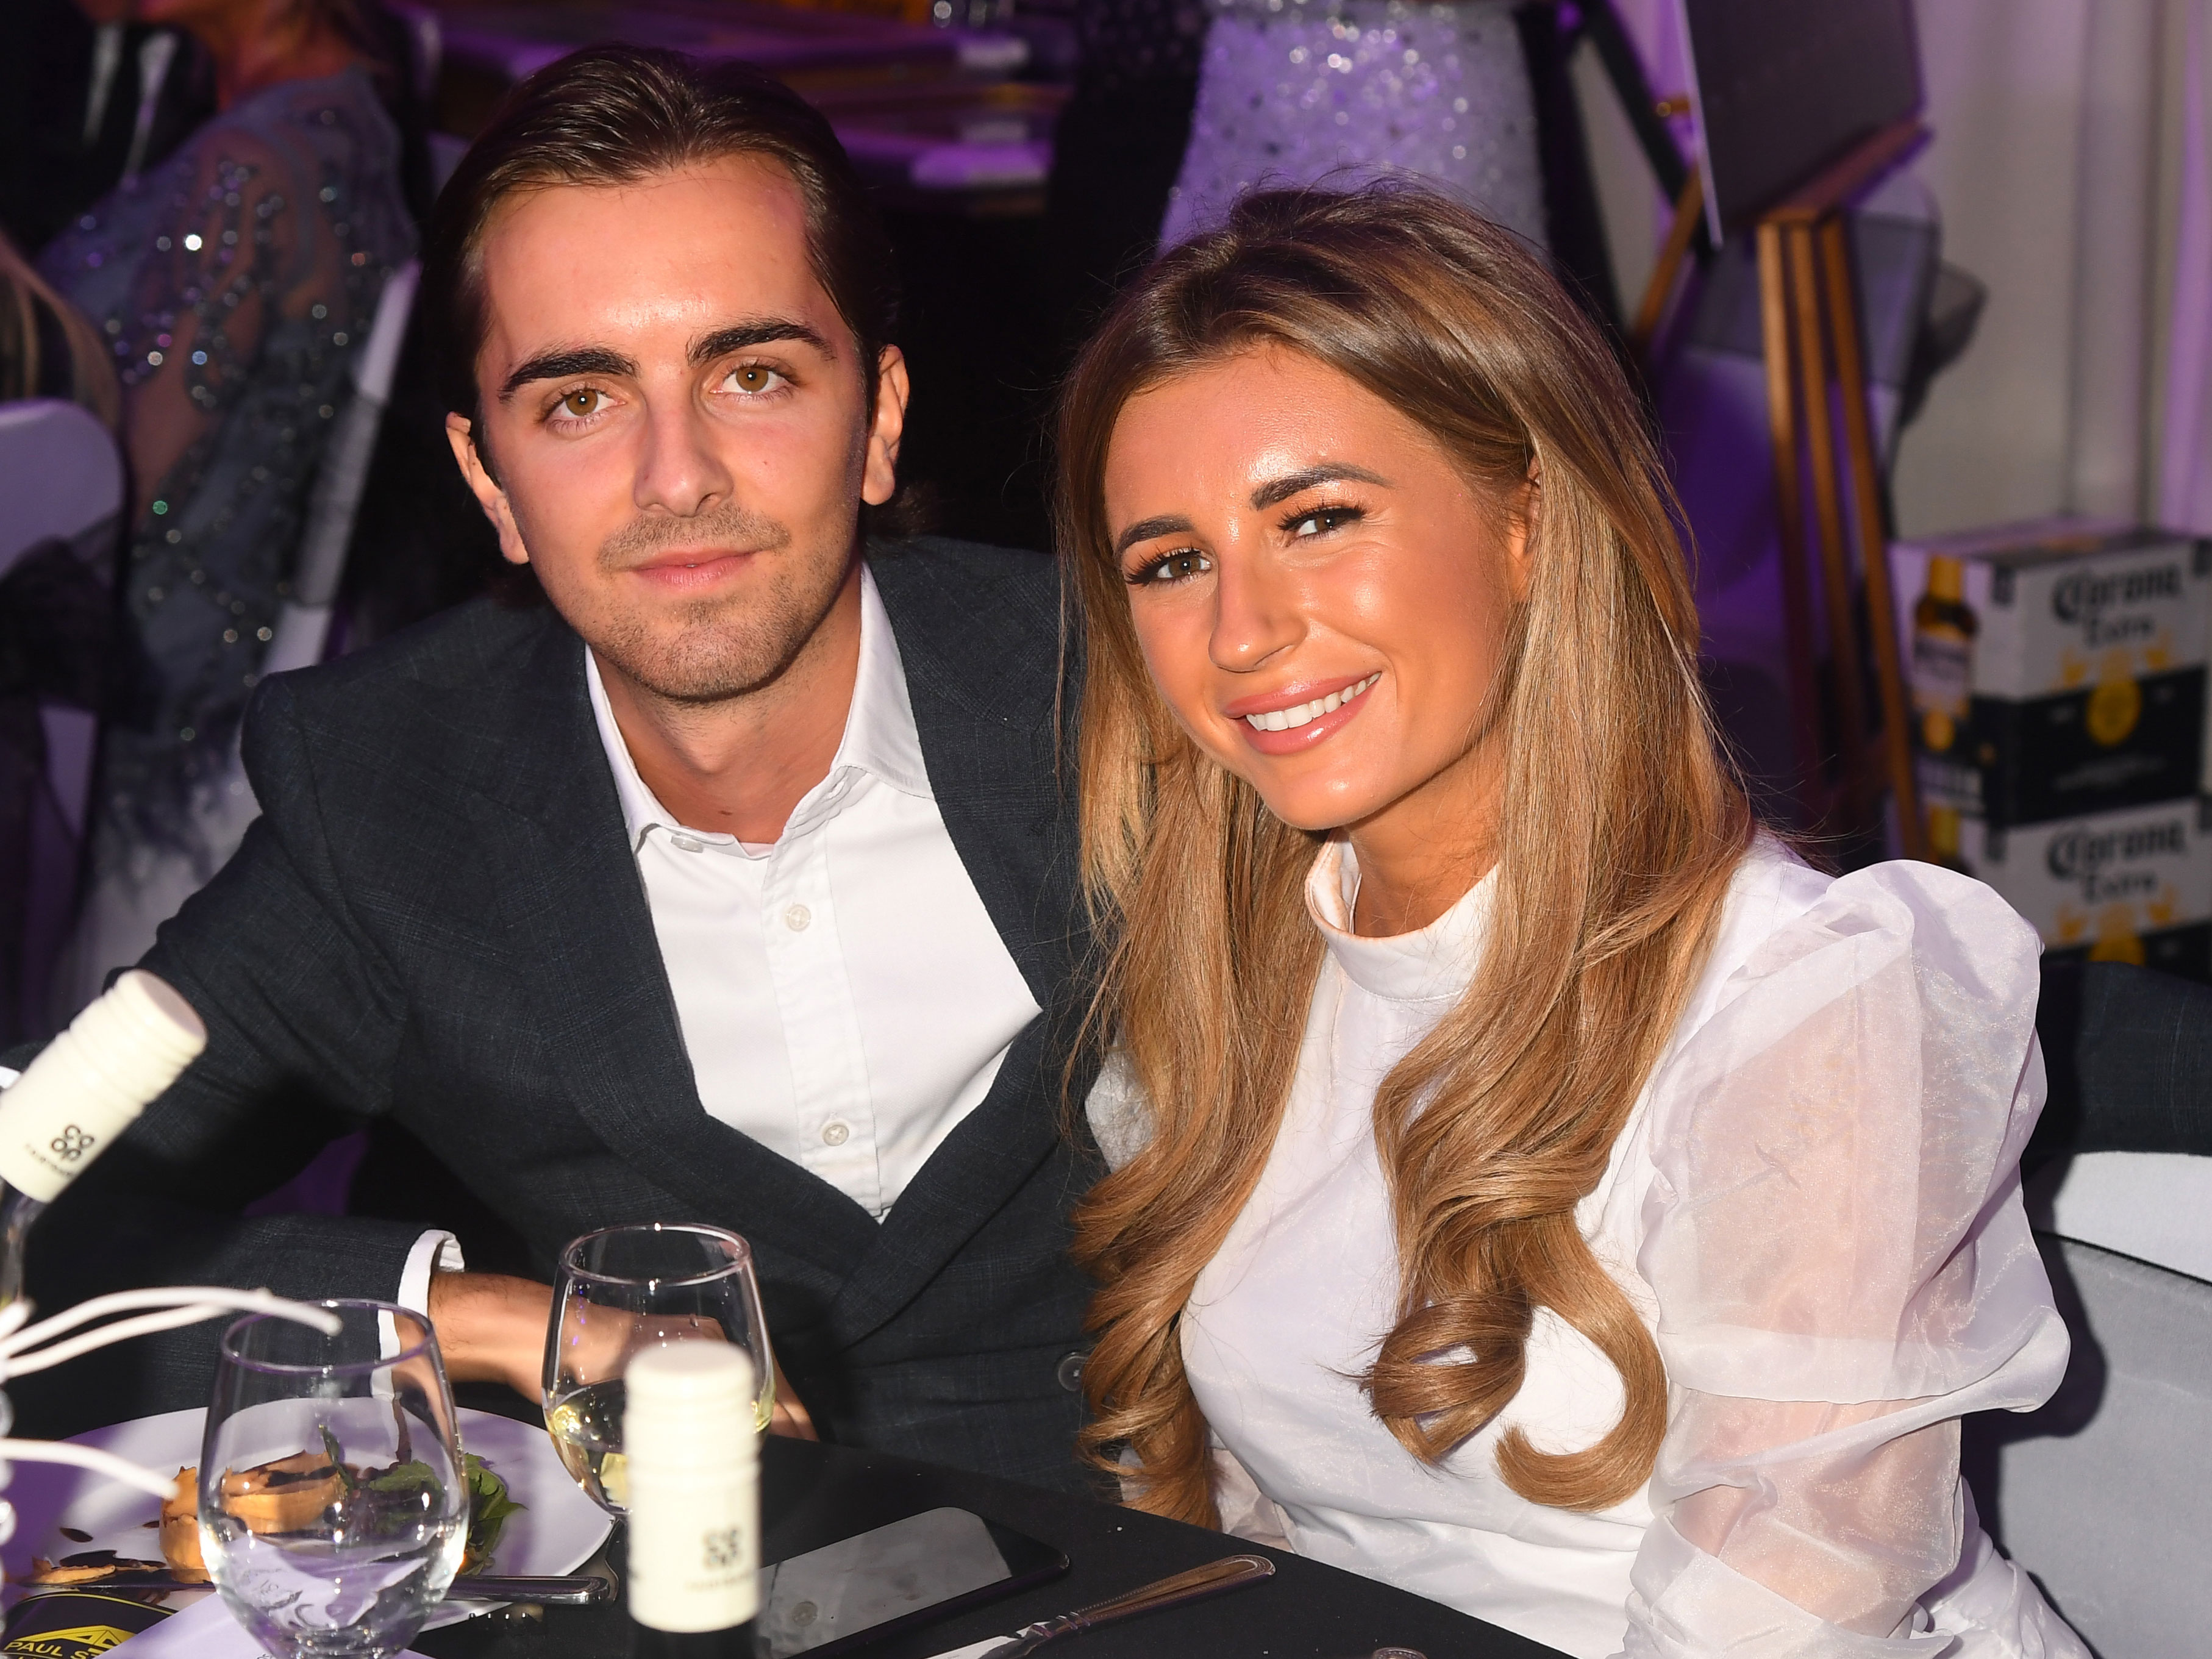 Dani Dyer spills the truth on how she actually got together with boyfriend Sammy Kimmence